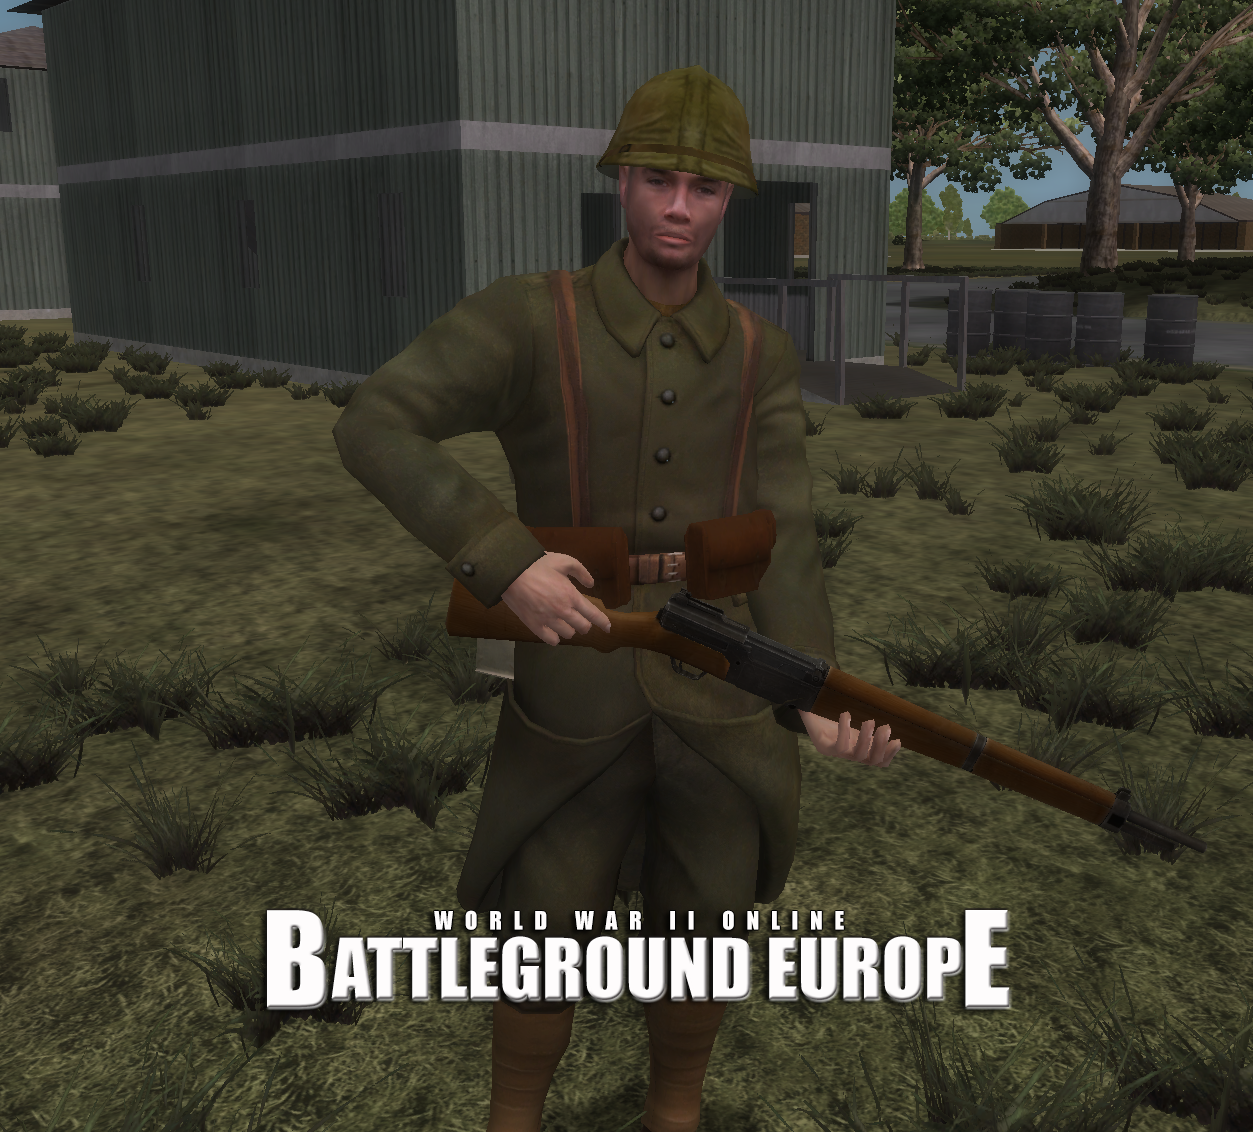 Now available in WWII Online!